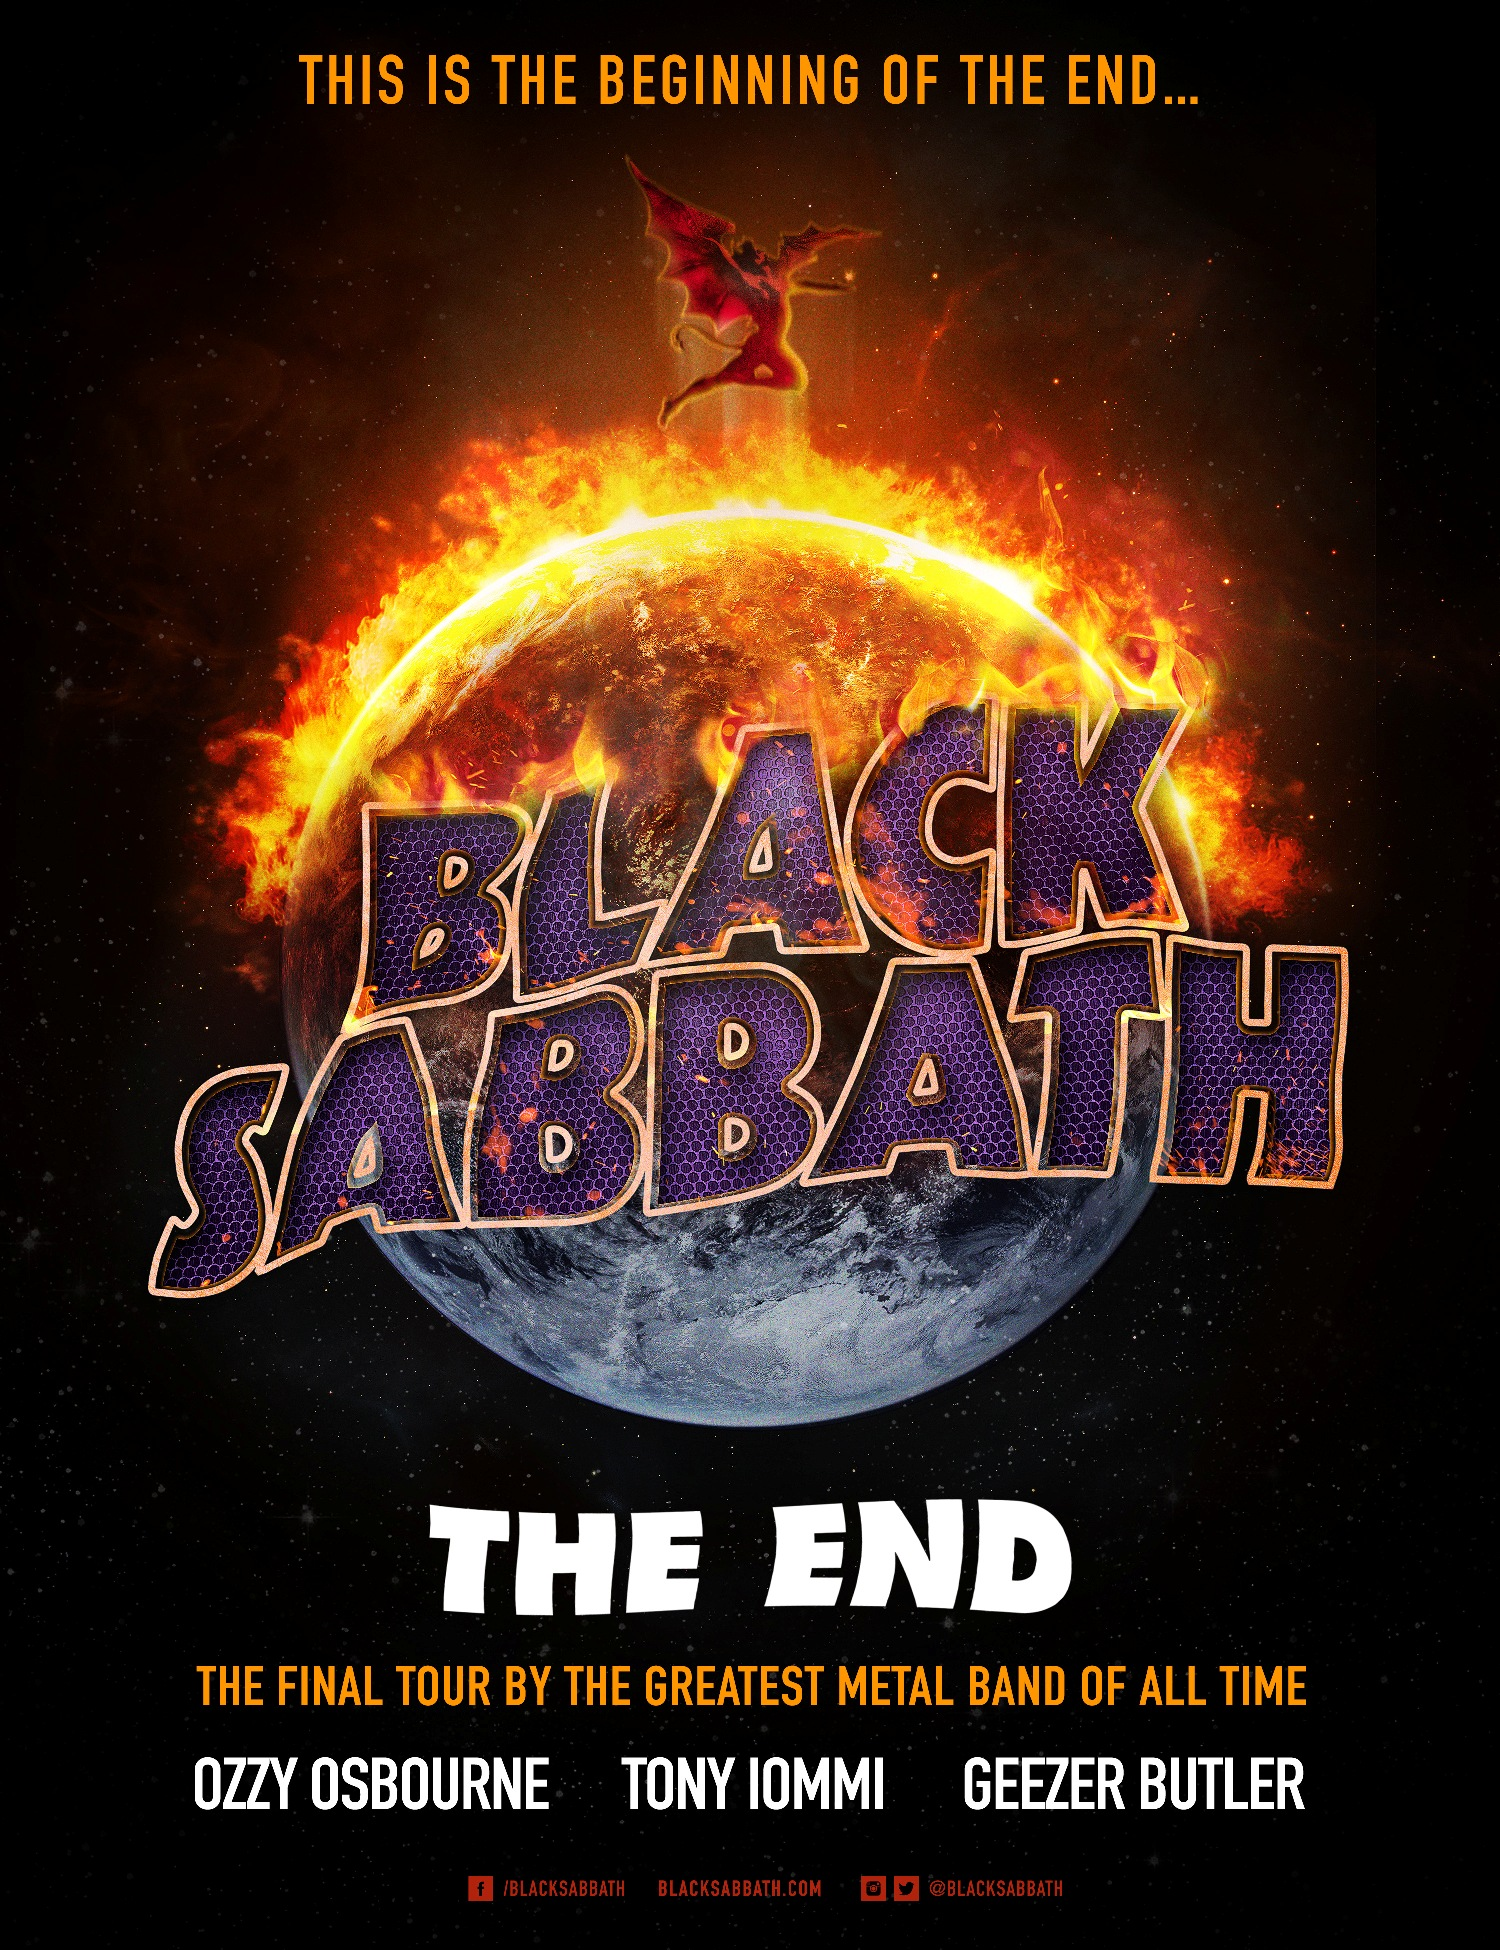 Black sabbath tour dates in Melbourne